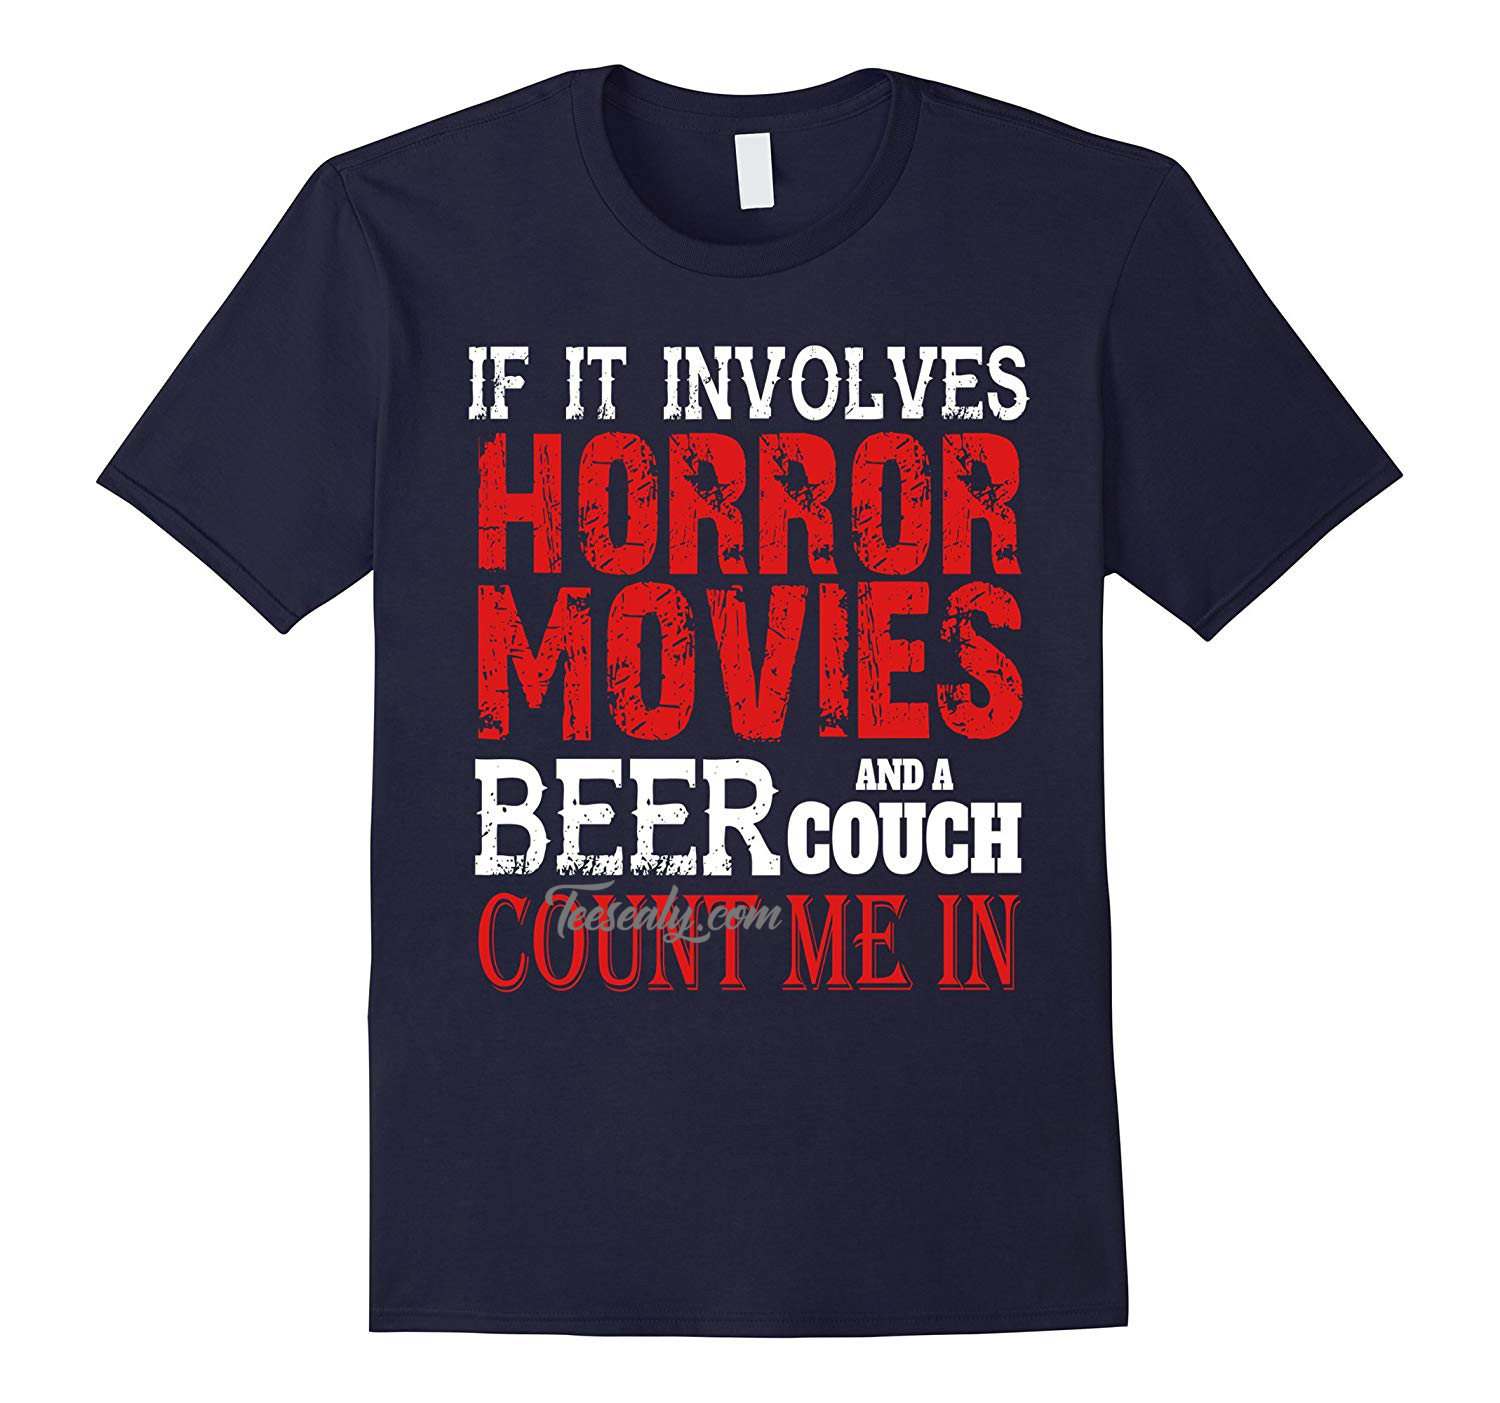 If It Involves Horror Movies Beer and a Couch Count Me In Stylish T-Shirt